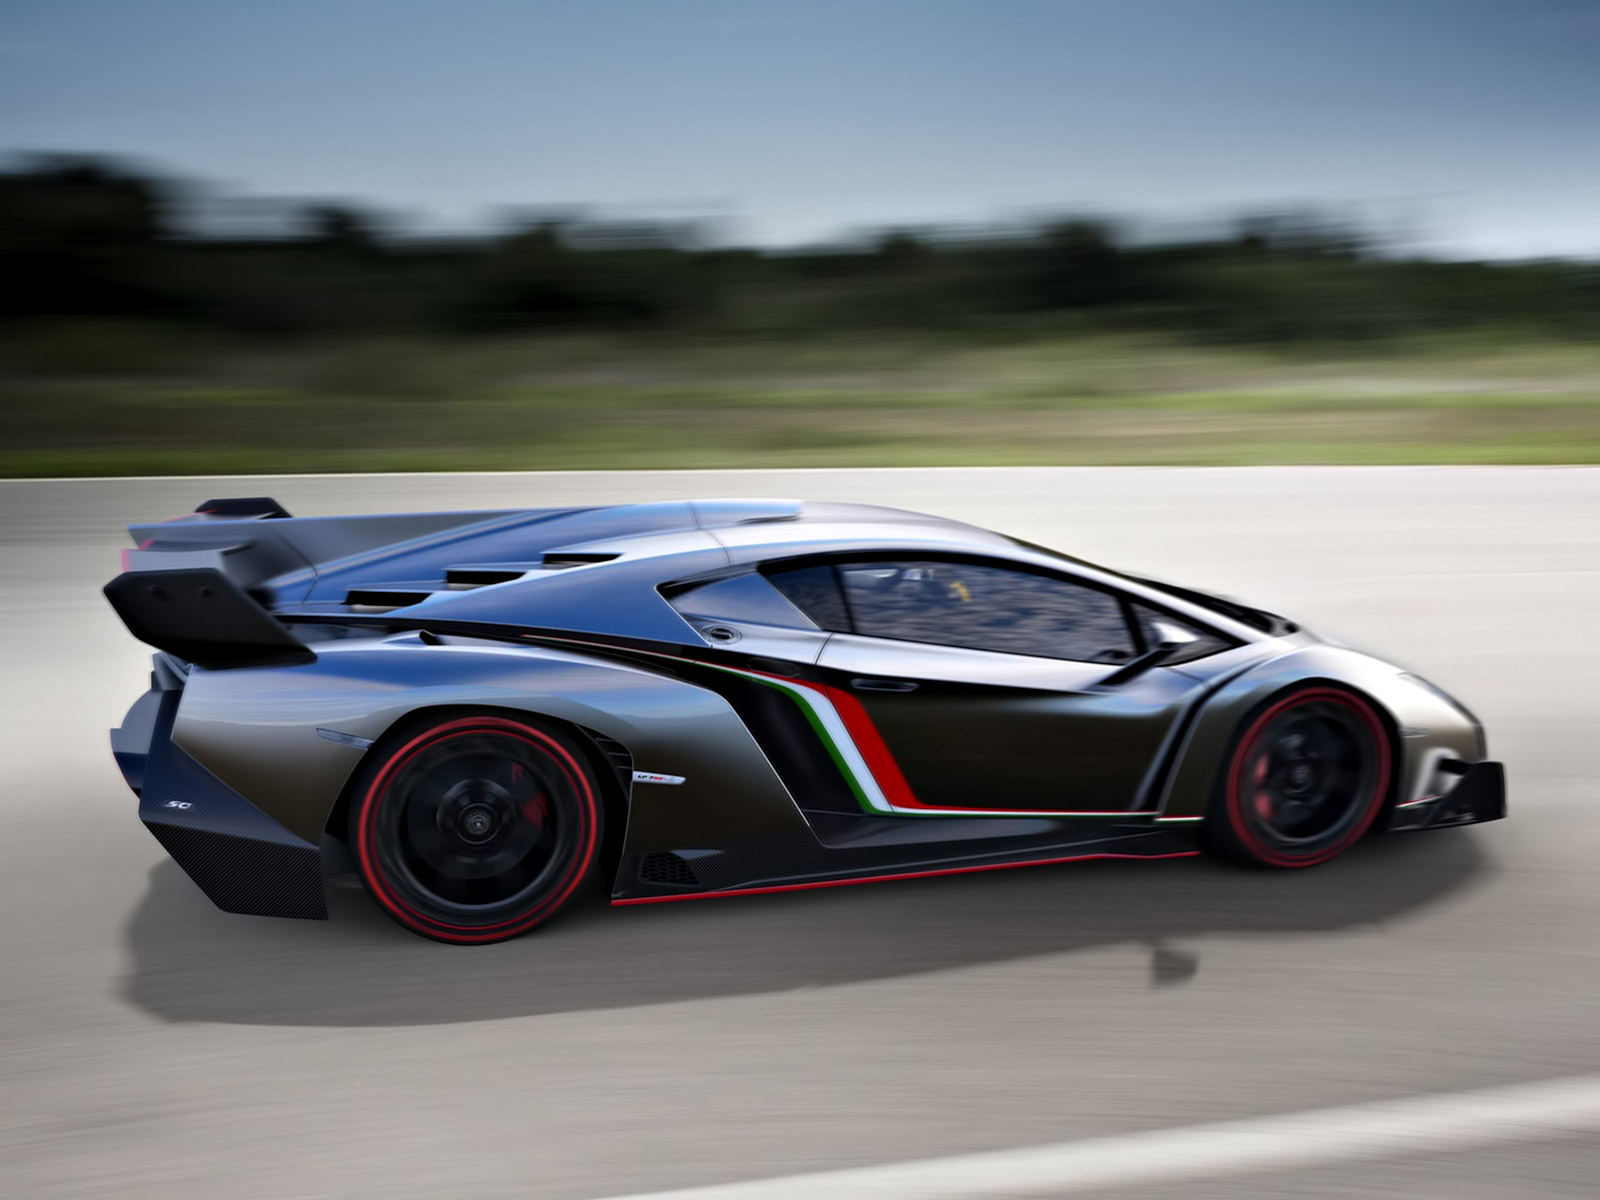 Lamborghini Veneno - The Top-Five Most Uber-Expensive Luxury Supercars in the World